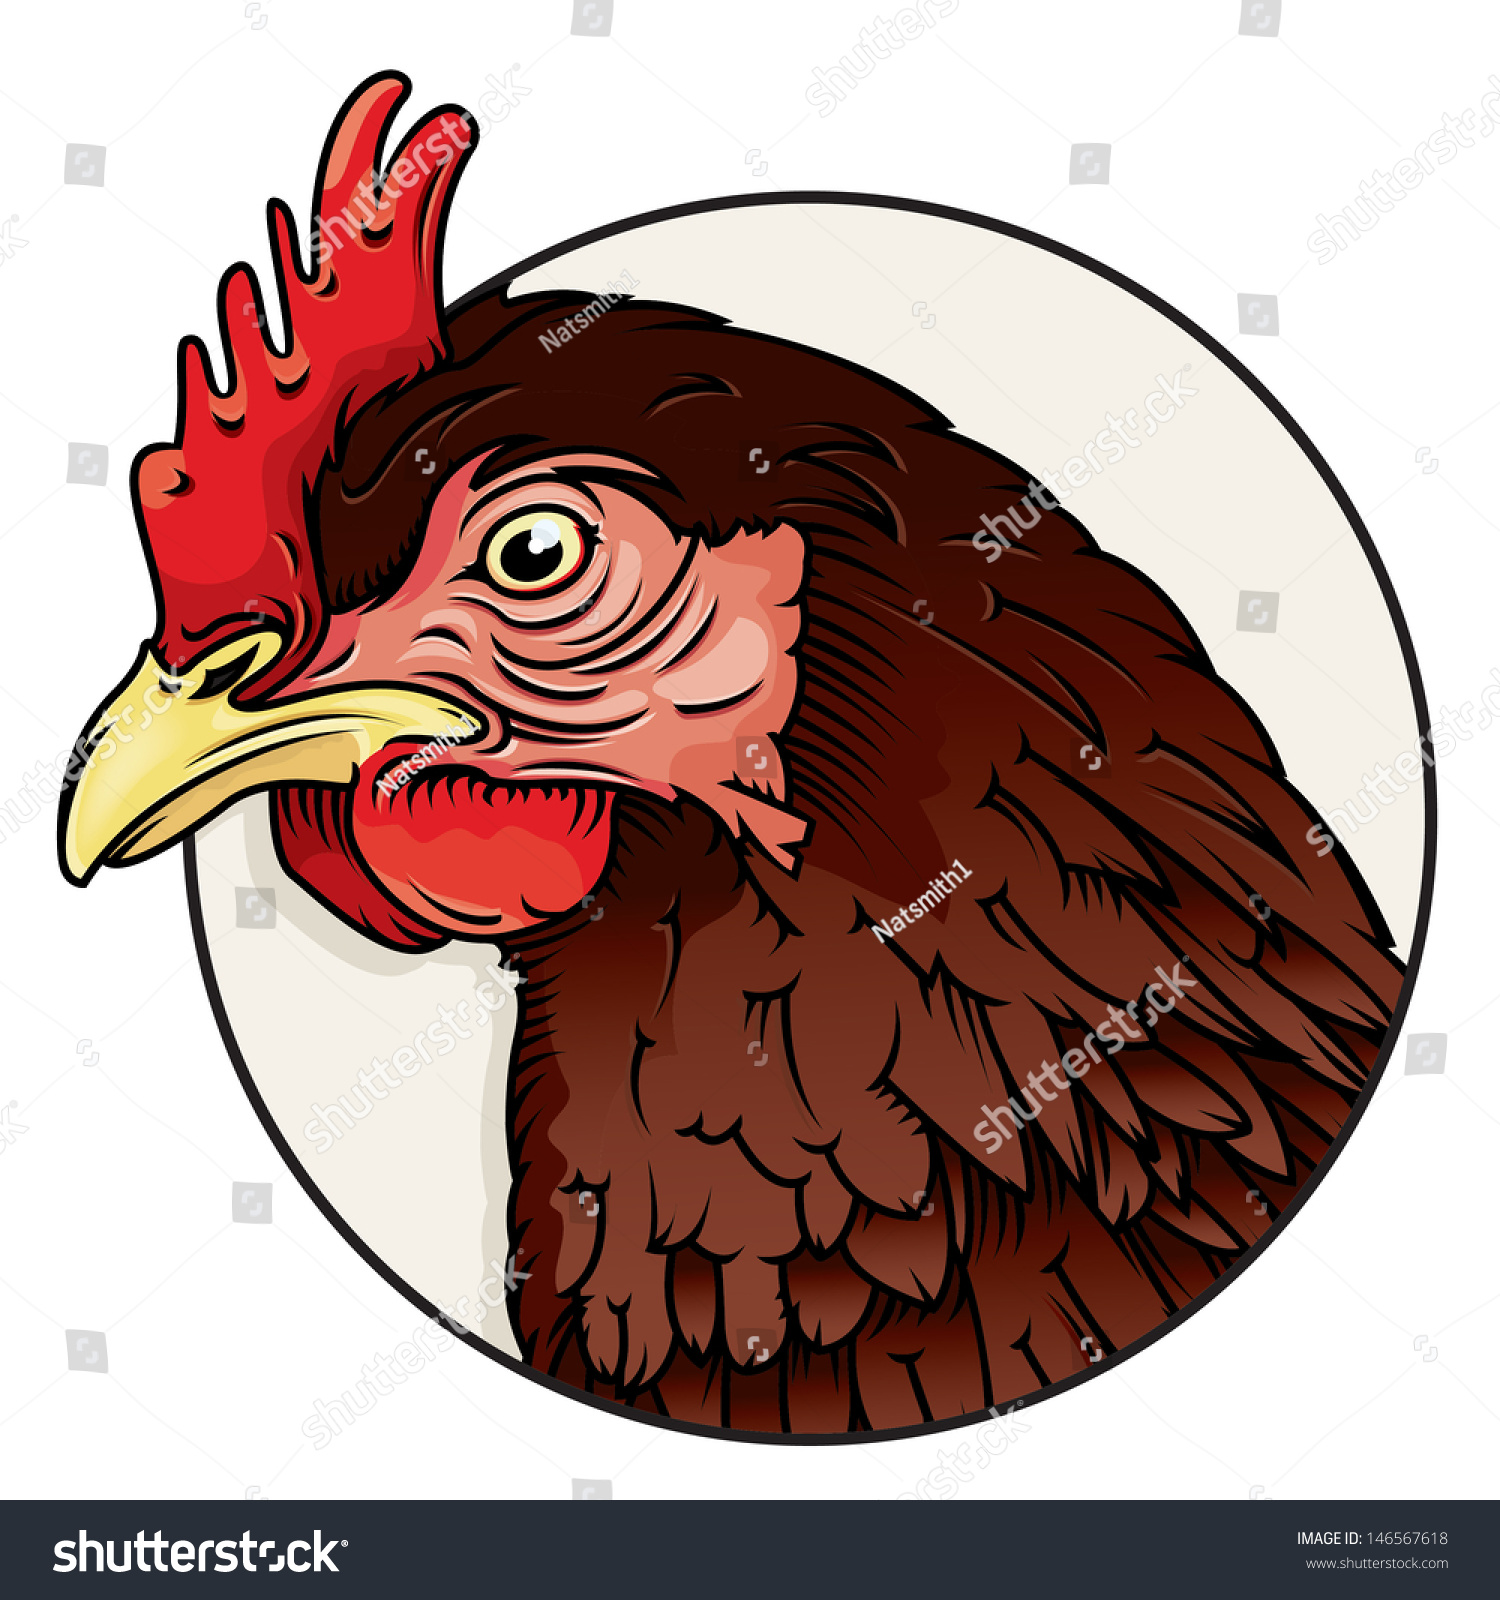 vector drawing of a chicken headchicken head easy to edit layers and groups